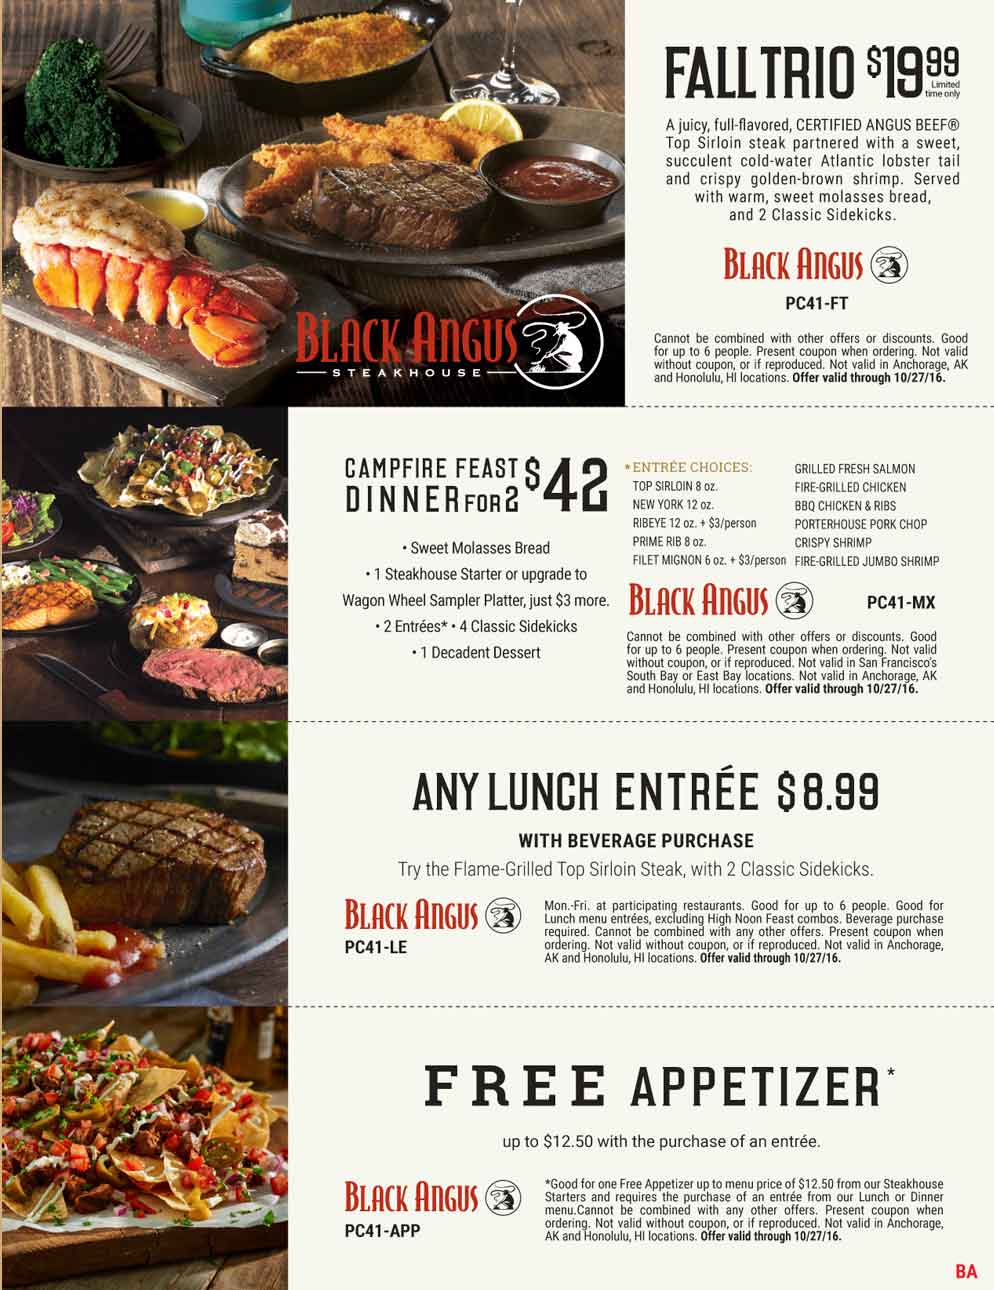 Black Angus Coupon April 2017 $12 appetizer free with your entree & more at Black Angus steakhouse